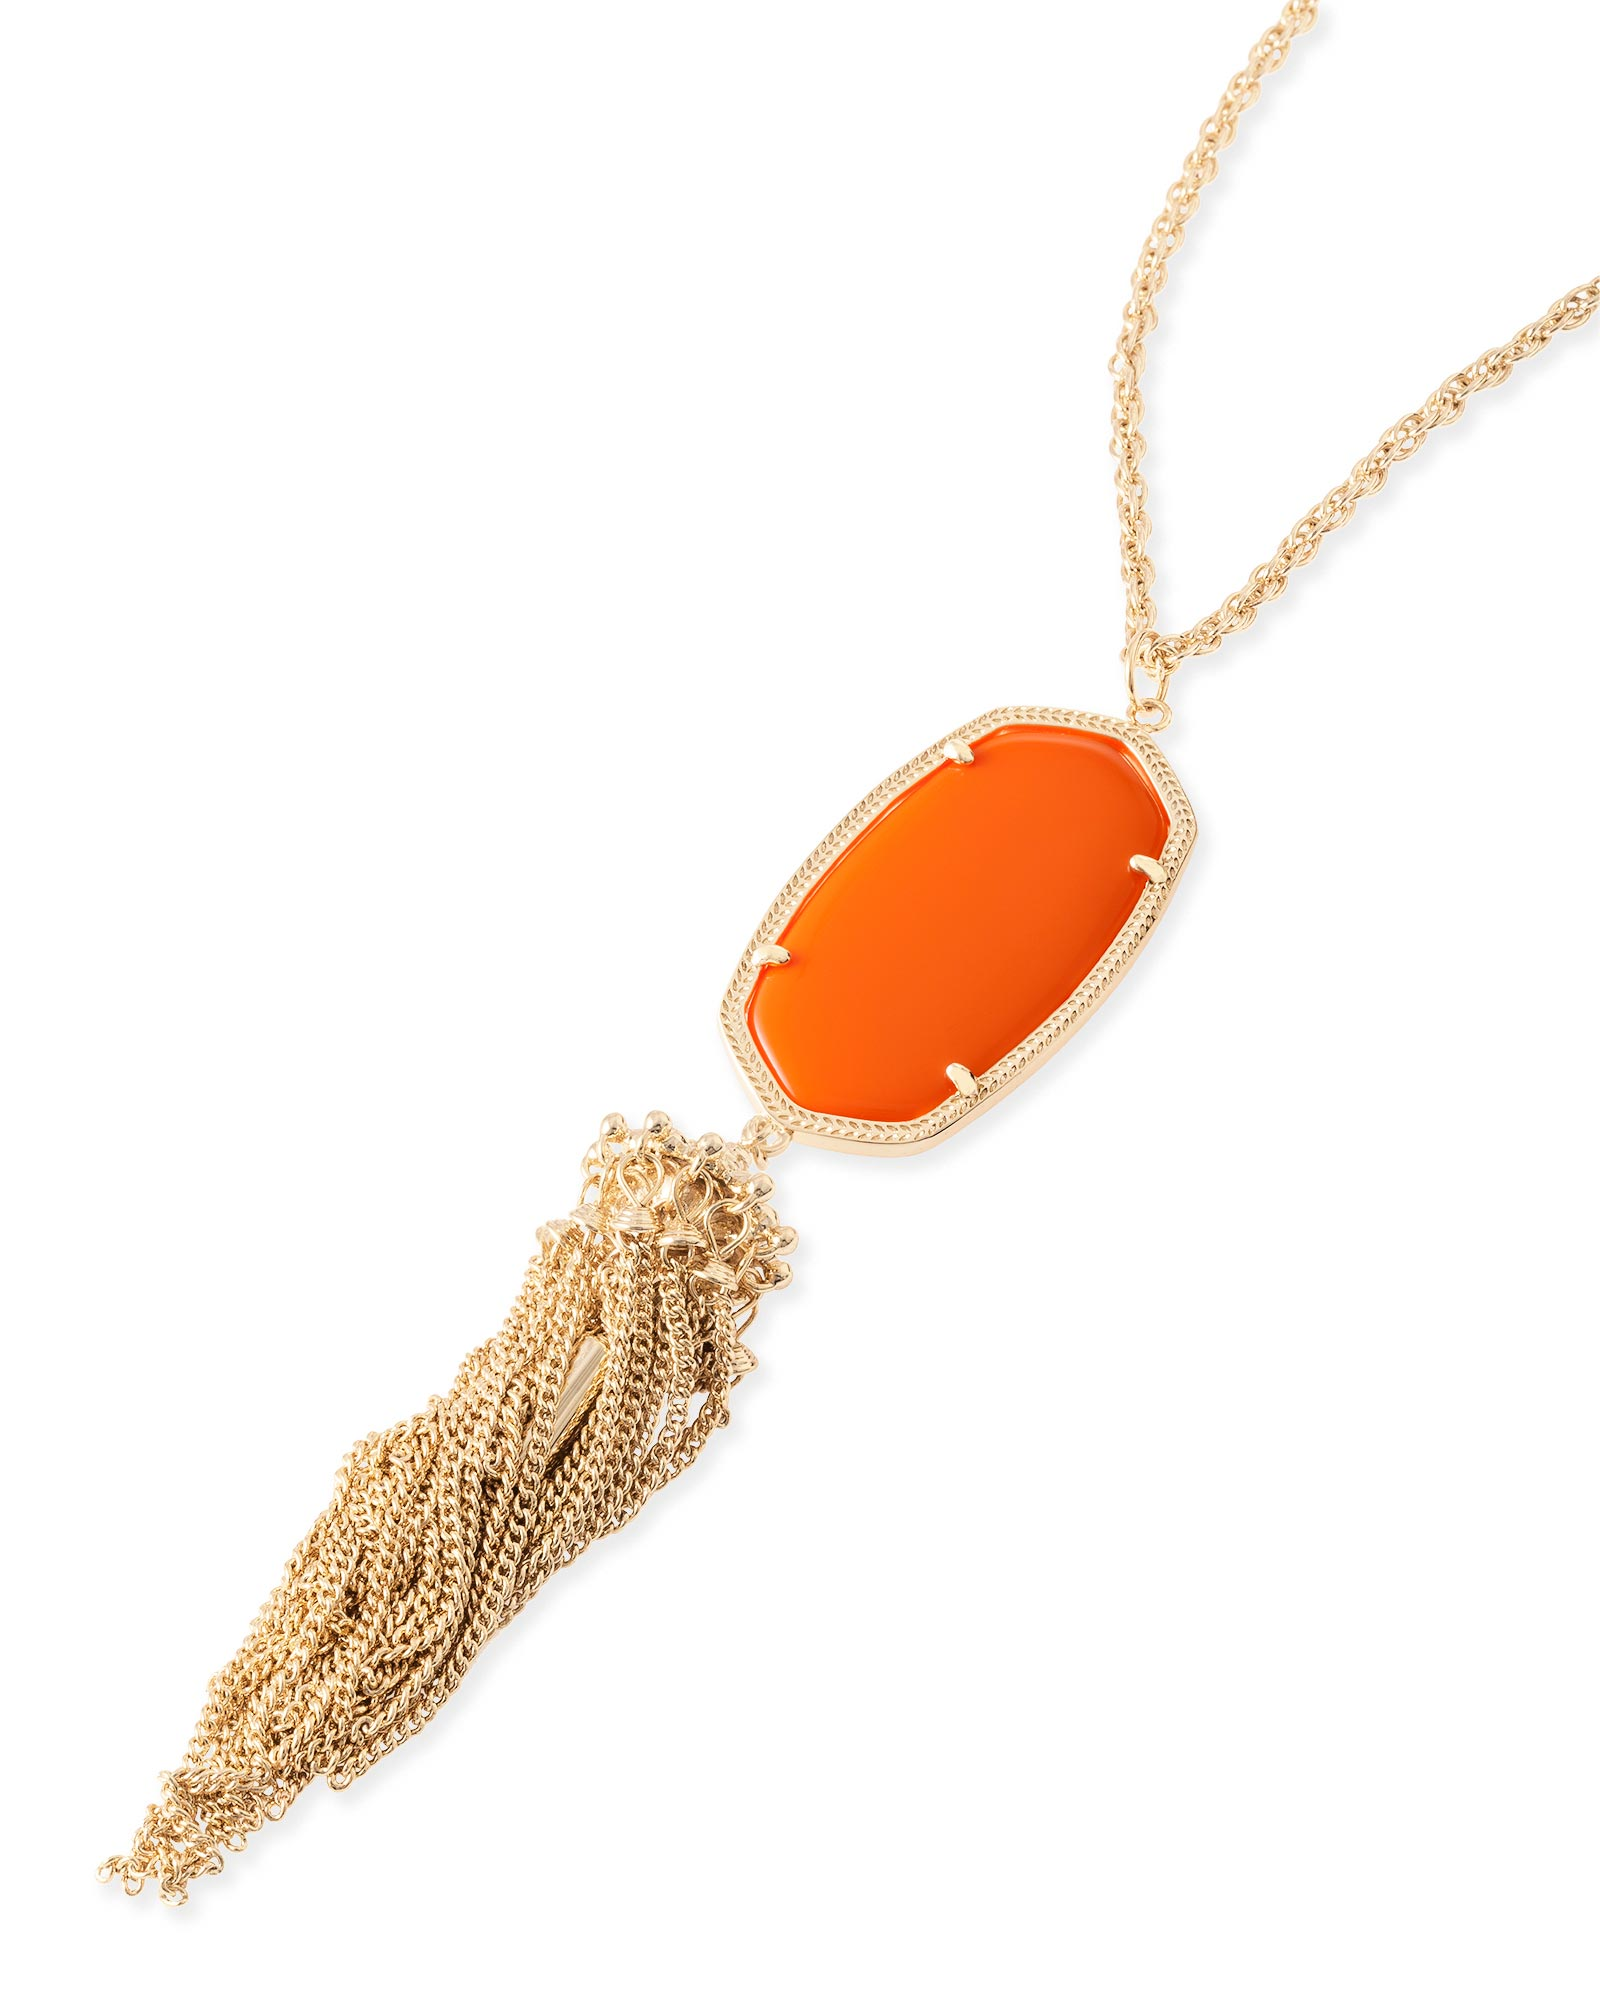 Rayne Necklace in Orange